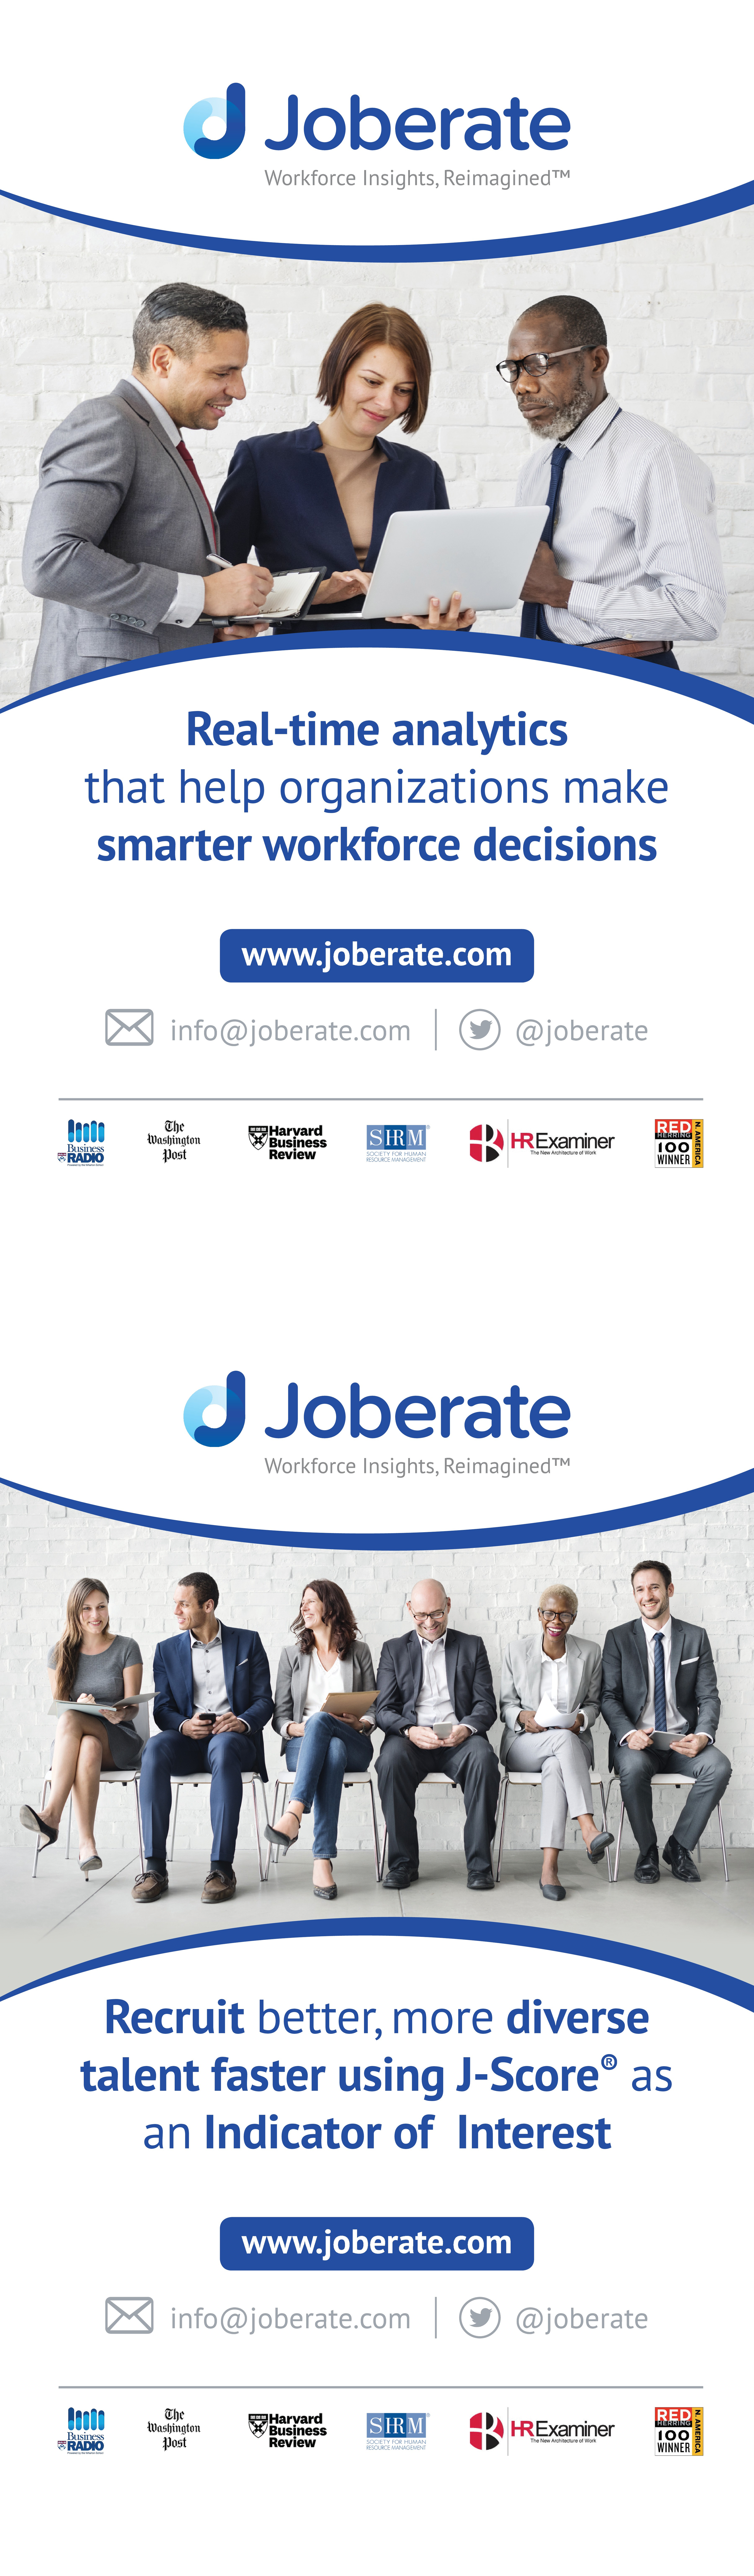 Design engaging banner for workforce analytics company (HRO Today Forum)